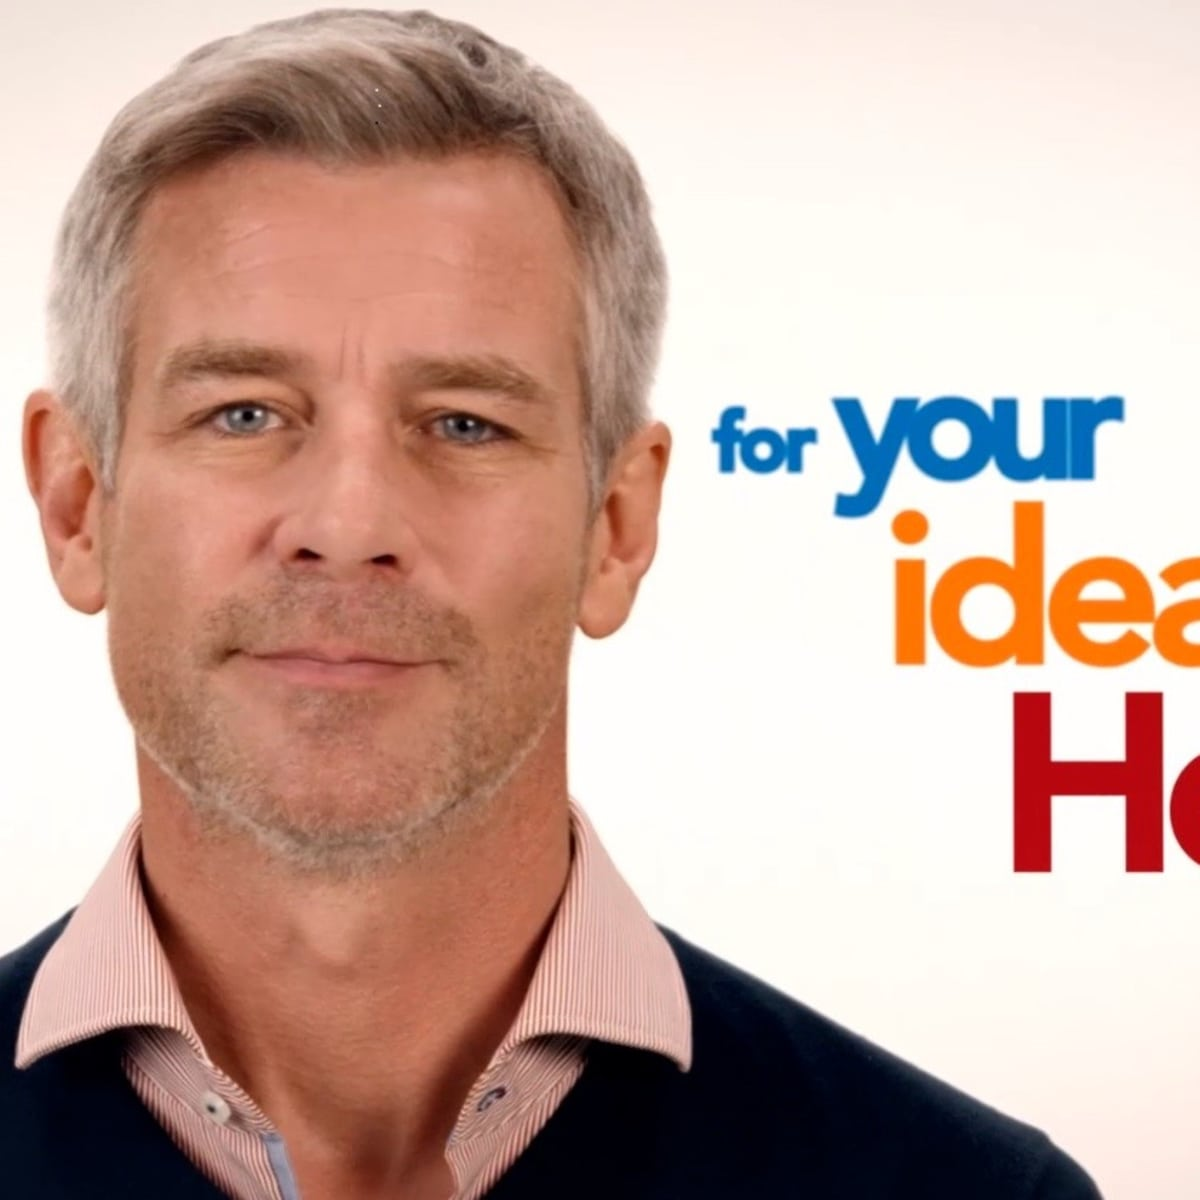 Tim Williams Trivago spokesman